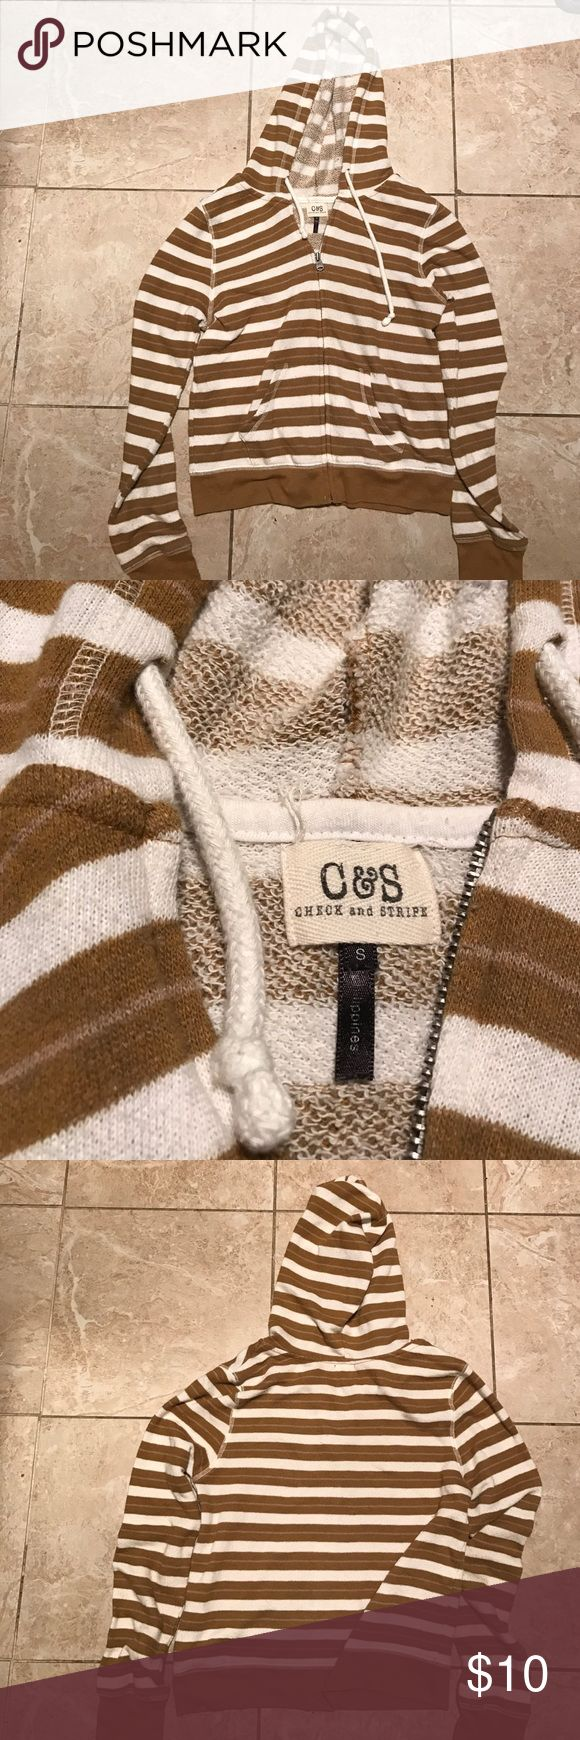 PacSun C&S check and stripe zip up hoodie Brown and white horizontal stripes. Super soft and light. VGUC PacSun Tops Sweatshirts & Hoodies